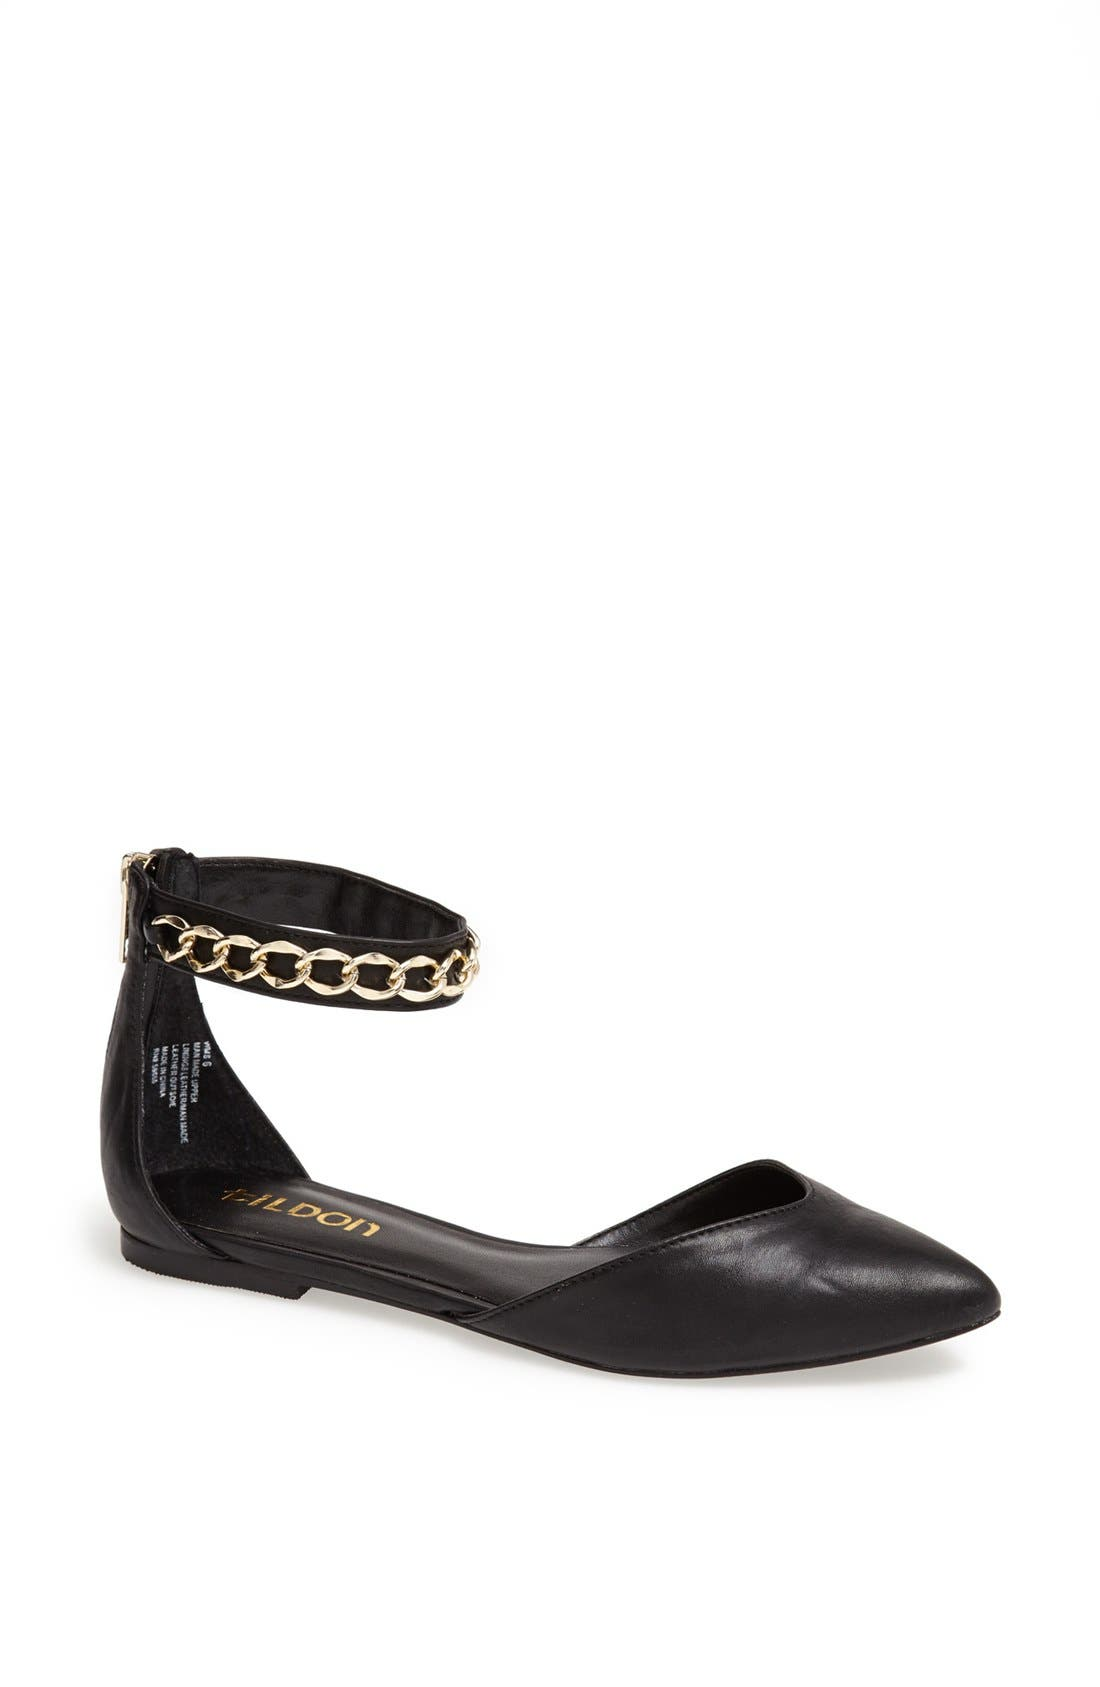 'Anya' Ankle Strap D'Orsay Flat,                         Main,                         color,